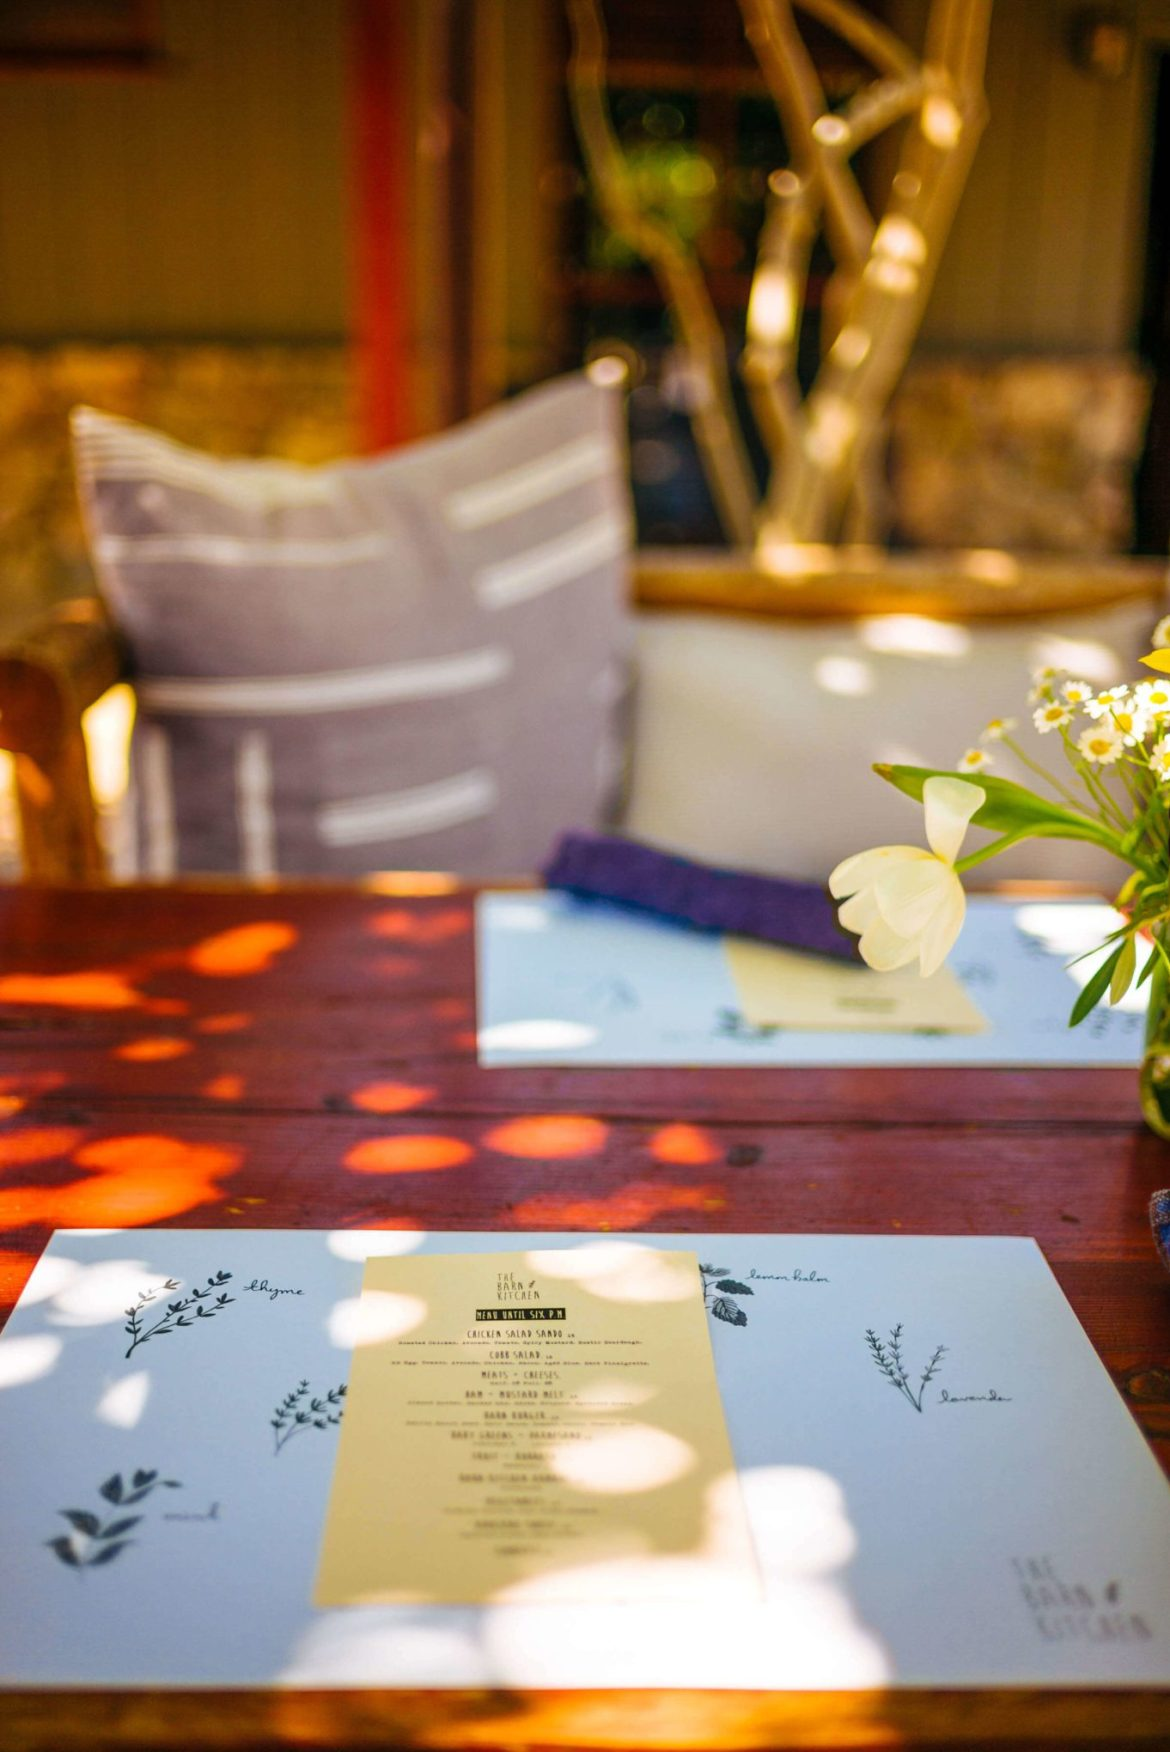 The most relaxing lunch and best restaurant in Palm Springs outside is at the Barn Kitchen at Sparrows Lodge in Palm Springs, thetasteedit